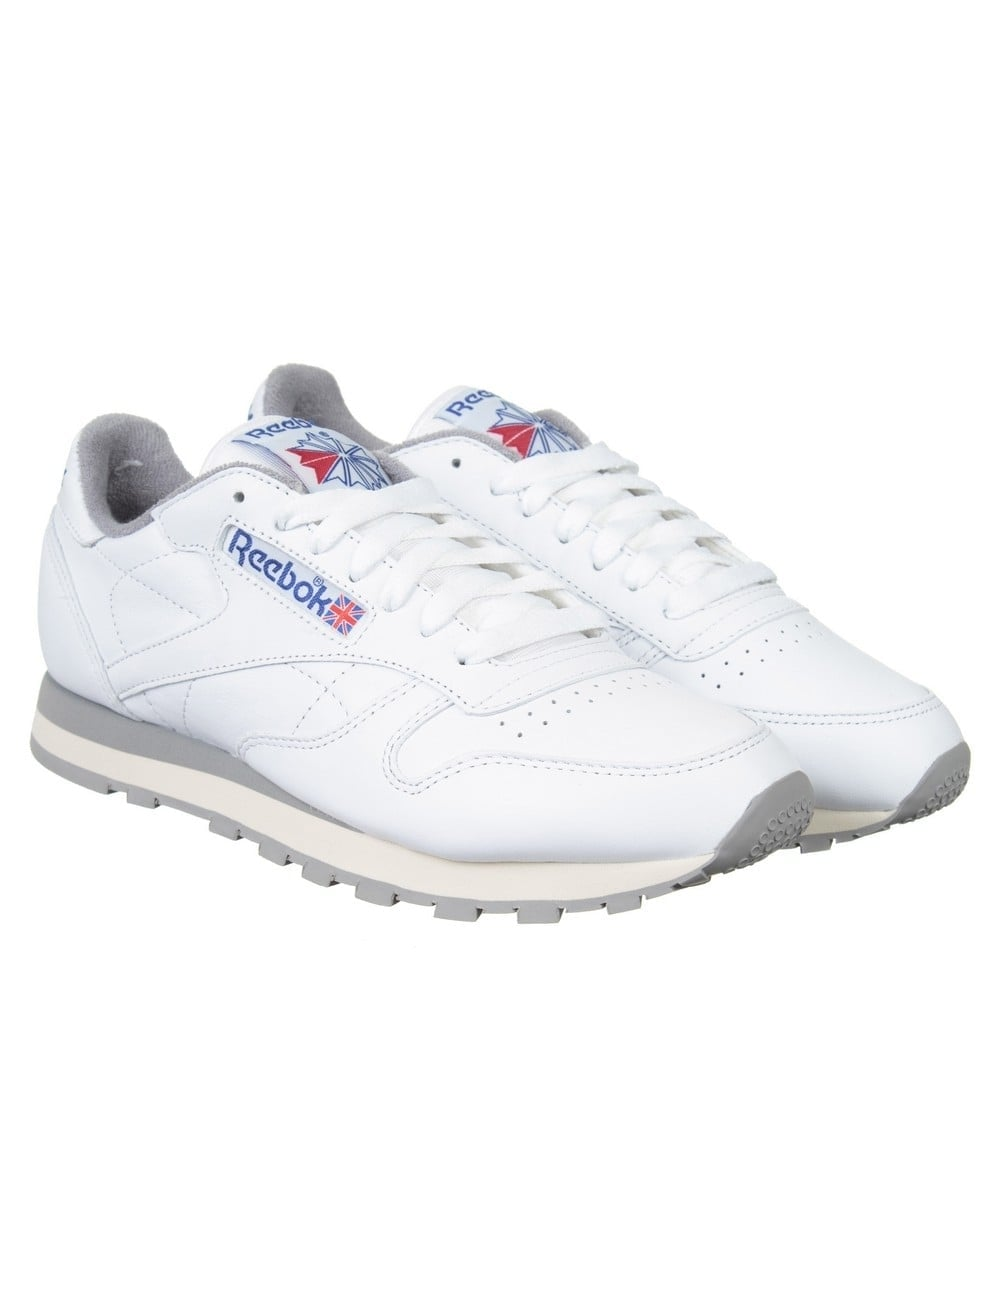 c08e4bf1f8a Reebok CL Leather R12 Shoes - White Grey Sand - Footwear from Fat ...